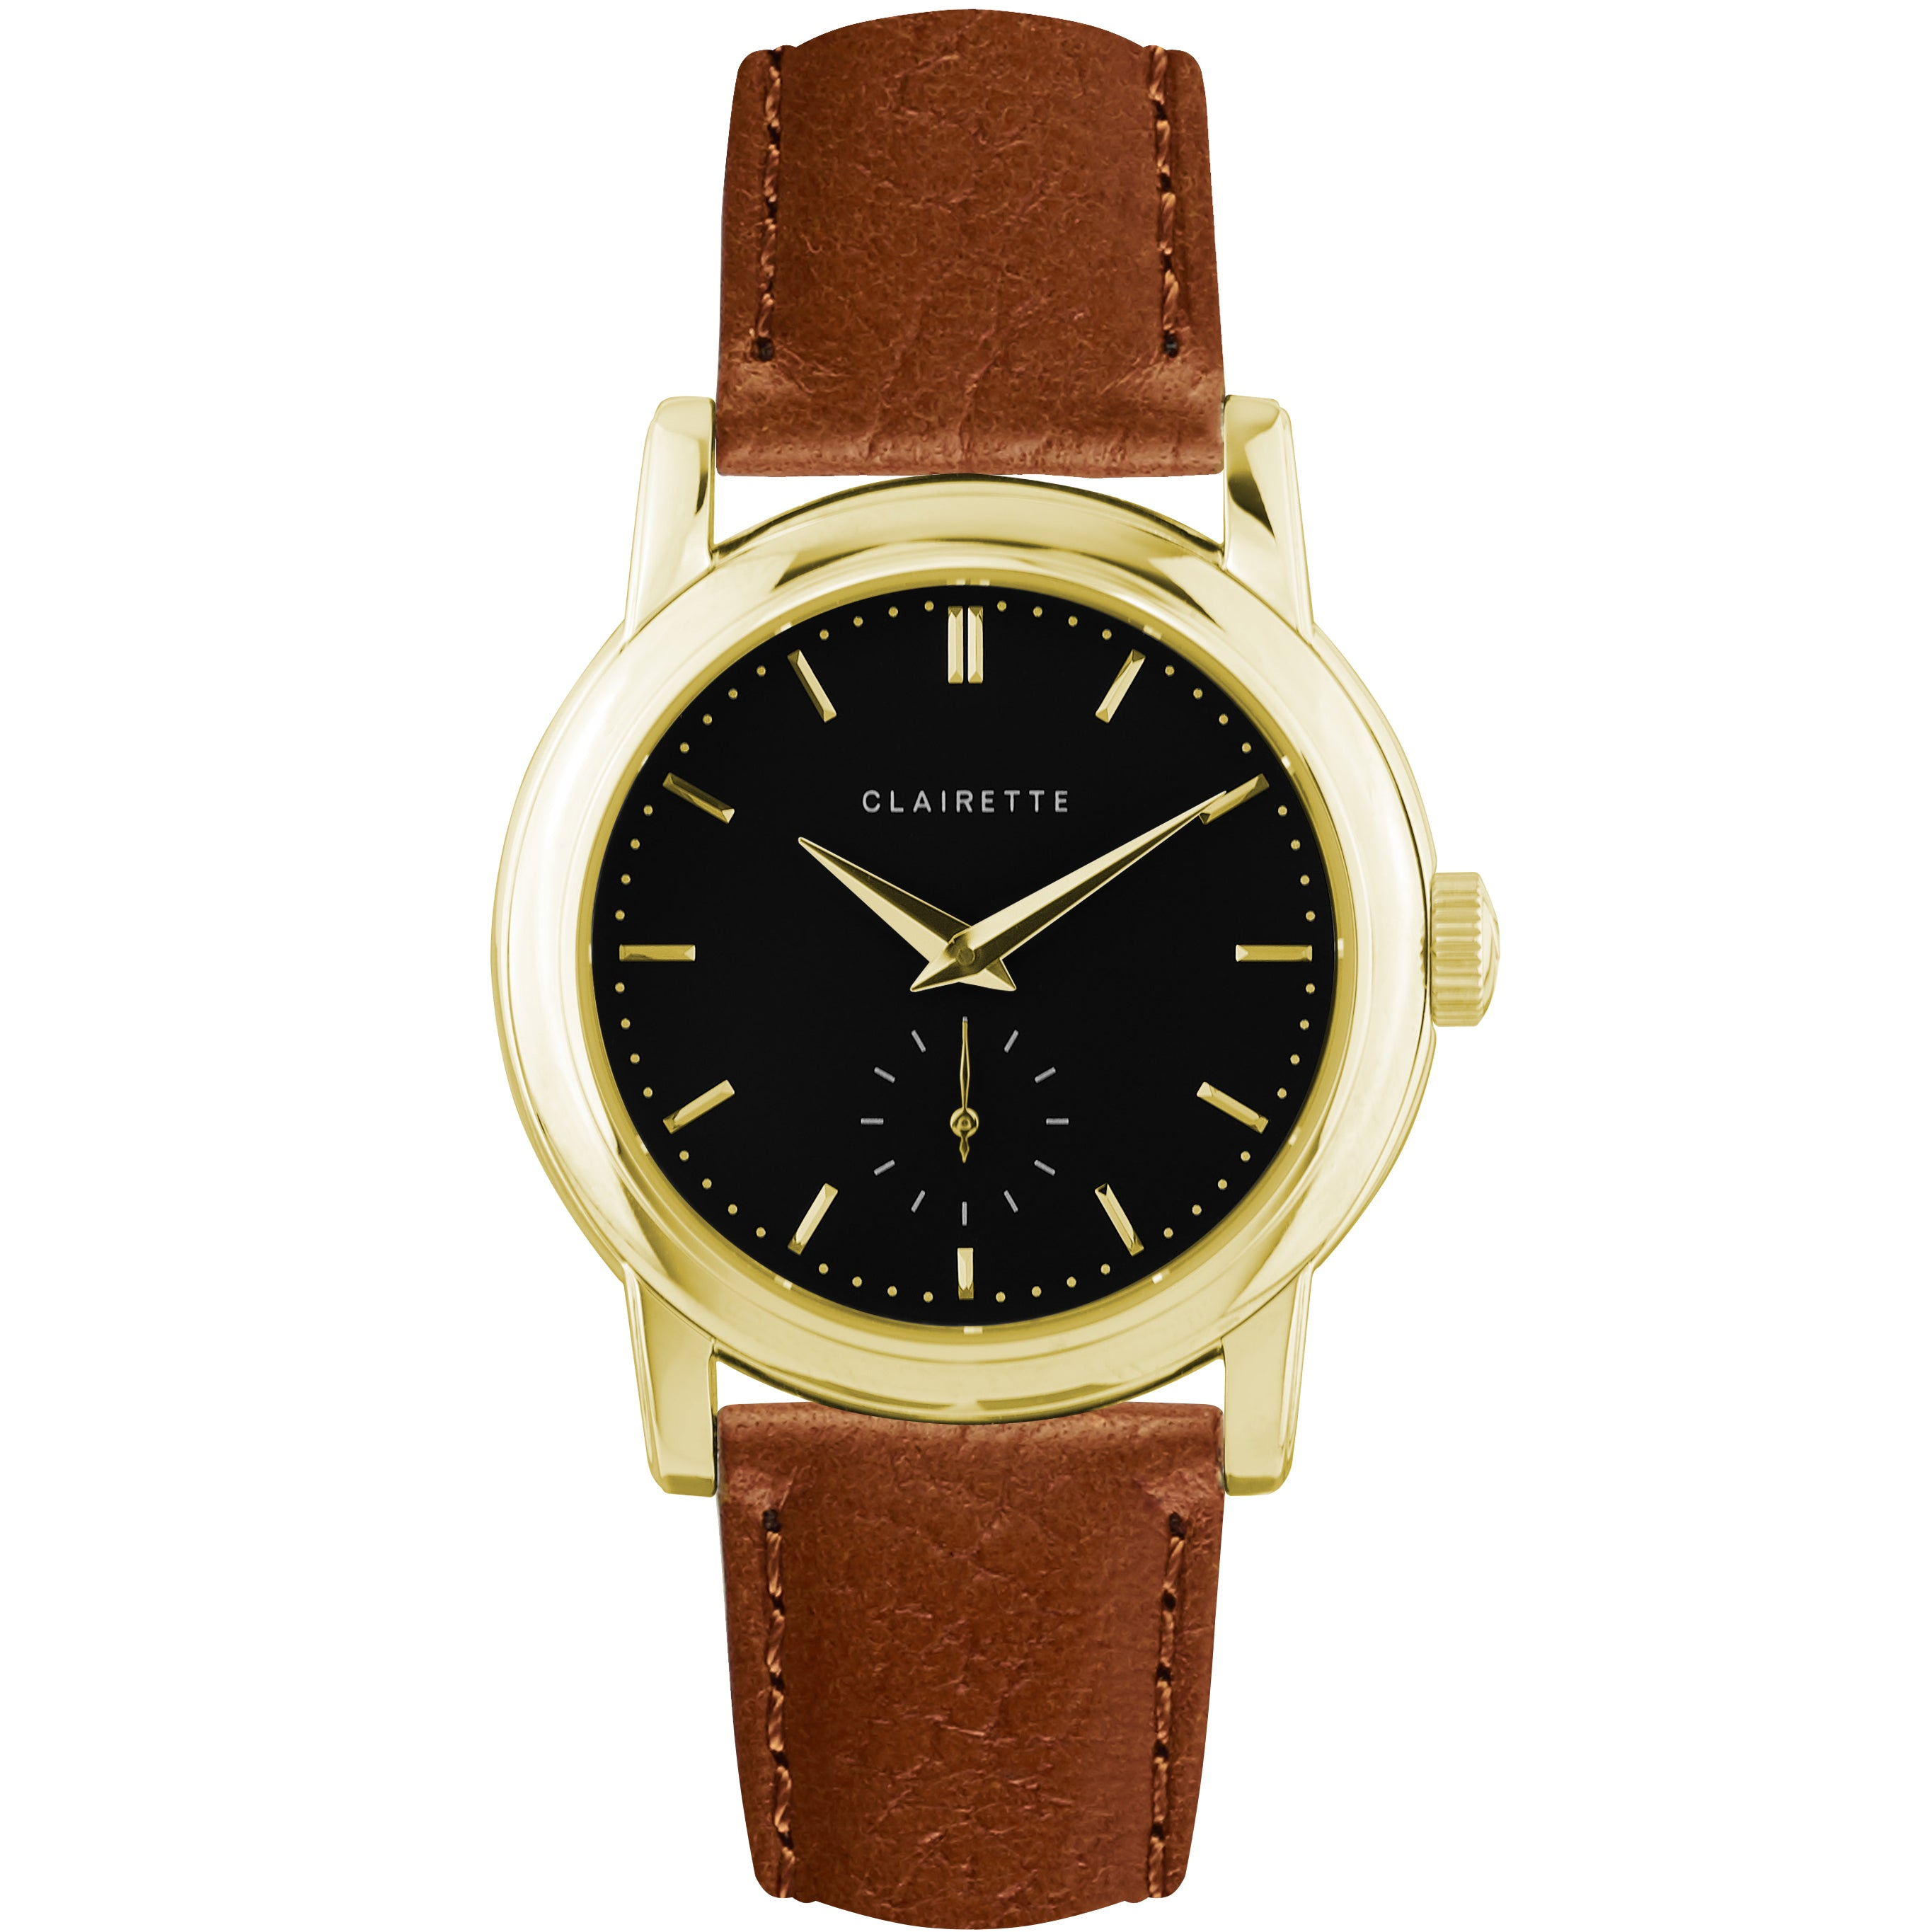 Men S Yellow Gold Watch W Black Dial Cognac Strap Clairette Watches